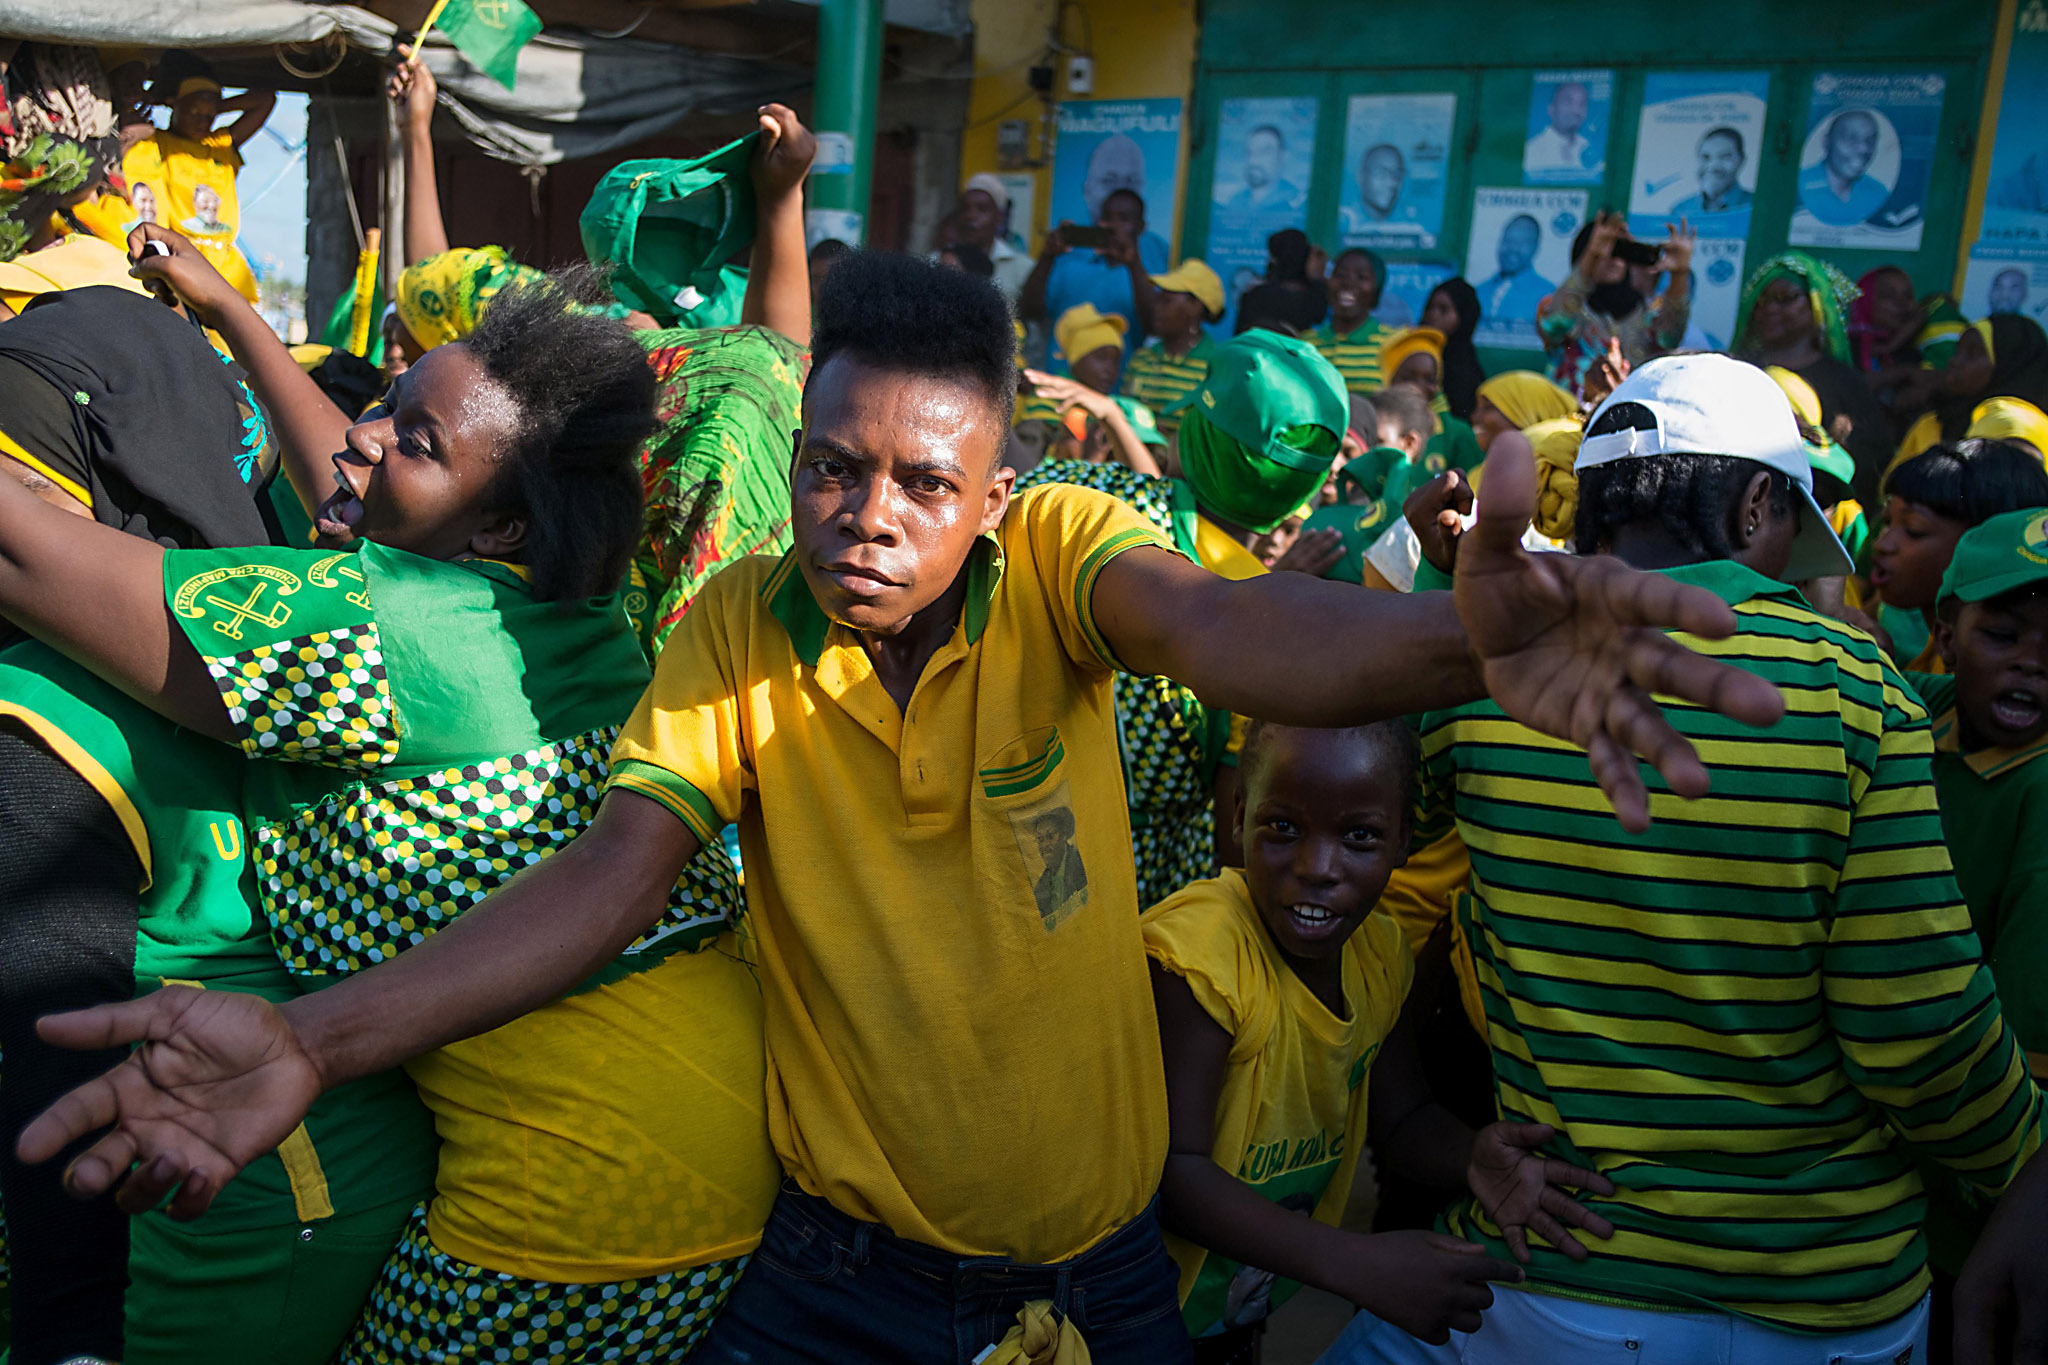 Supporters of ruling party Chama Cha Map...Supporters of ruling party Chama Cha Mapinduzi (CCM - Party of the Revolution) celebrate in the streets in Stone Town, Zanzibar on March 21, 2016, after the Zanzibar Electoral Commission announced that incumbent President Ali Mohamed Shein has won with over 90 percent the election re-run.    Election officials in Zanzibar on March 21 declared incumbent President Ali Mohamed Shein the winner of a weekend poll in Tanzania's semi-autonomous islands. Shein, of the ruling Chama Cha Mapinduzi (CCM) party, welcomed the announcement, a day after the presidential and legislative vote which was boycotted by the opposition.  / AFP PHOTO / DANIEL HAYDUKDANIEL HAYDUK/AFP/Getty Images